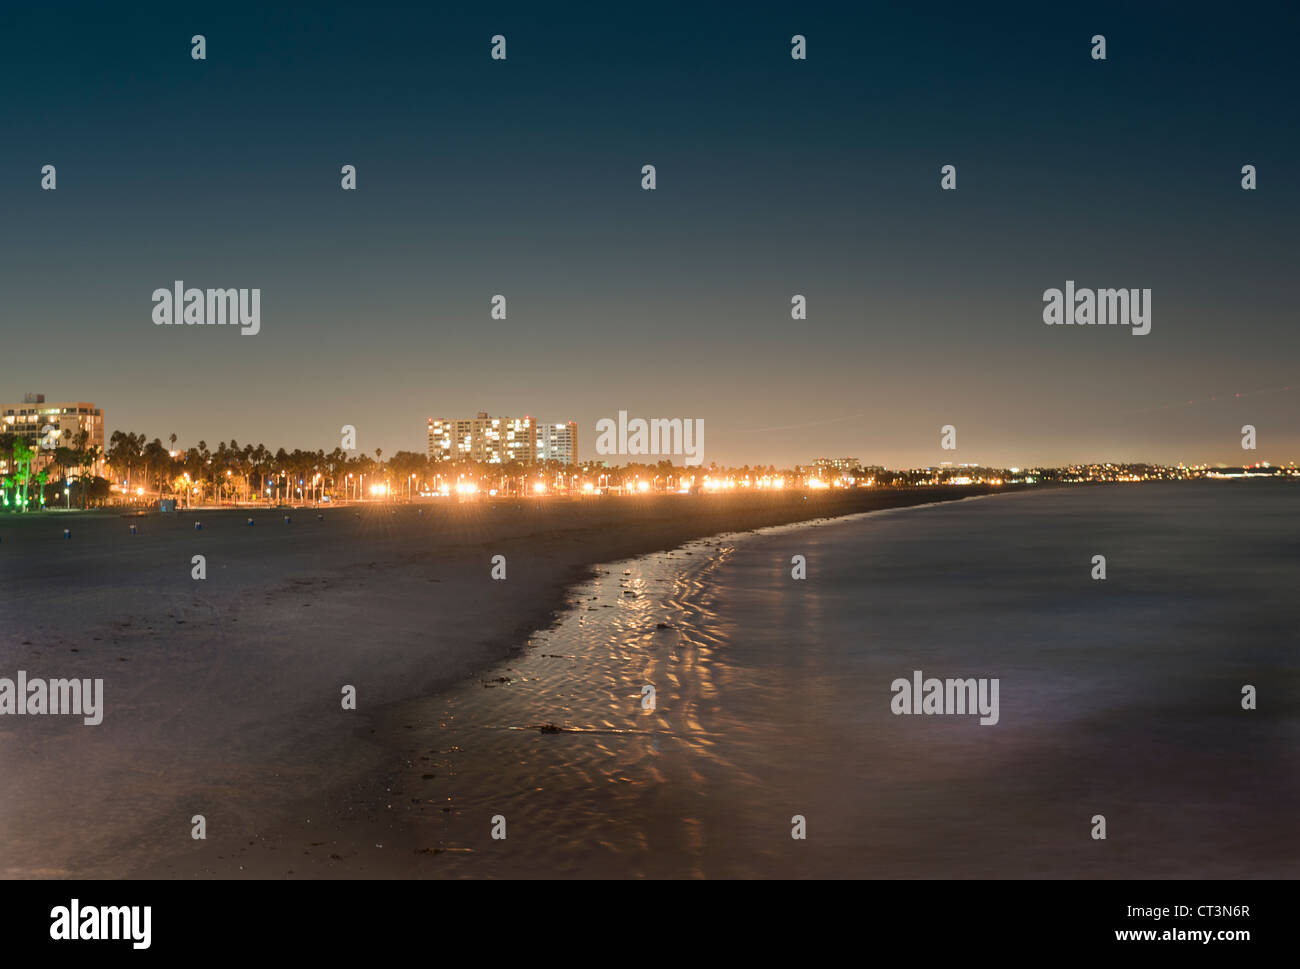 Los Angeles coastline lit up at night - Stock Image